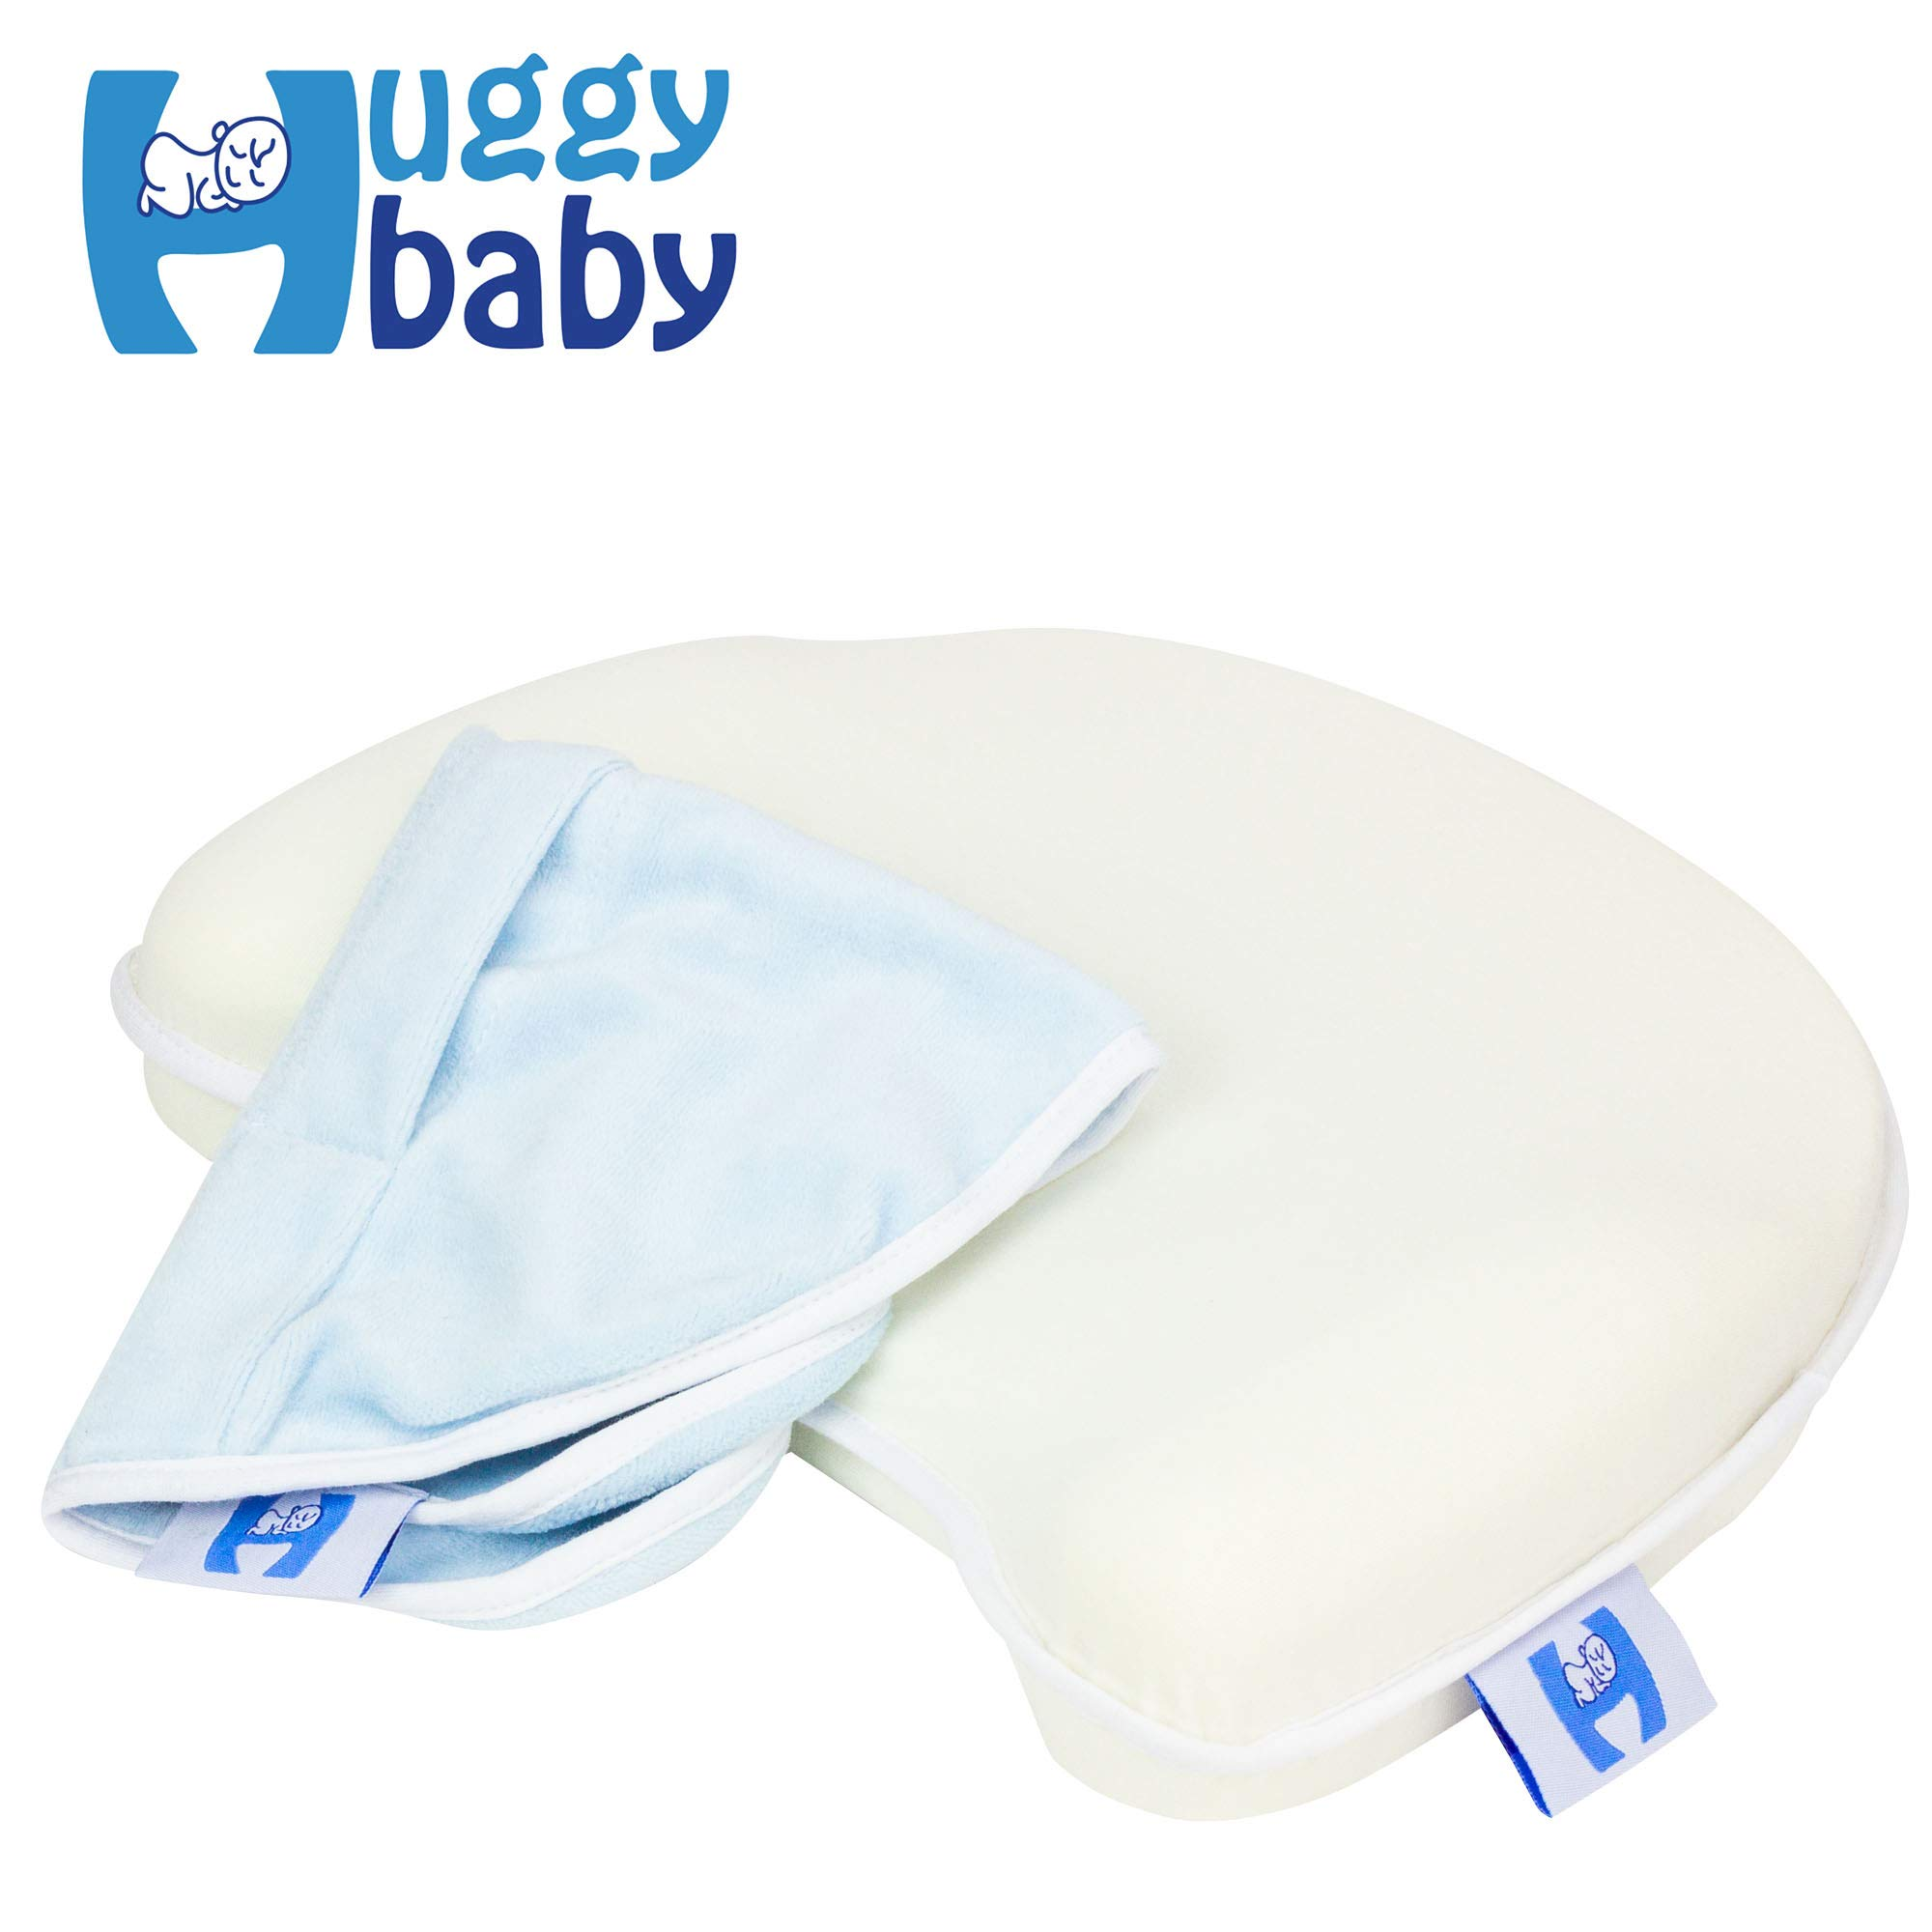 Premium Anti Flat Head Baby Pillow – Memory Foam Infant Head Support – Keeps Infant Head Round & Prevents Flat Head Syndrome – Includes Free Extra Pillow Case – Natural Baby Head Shaping Pillow